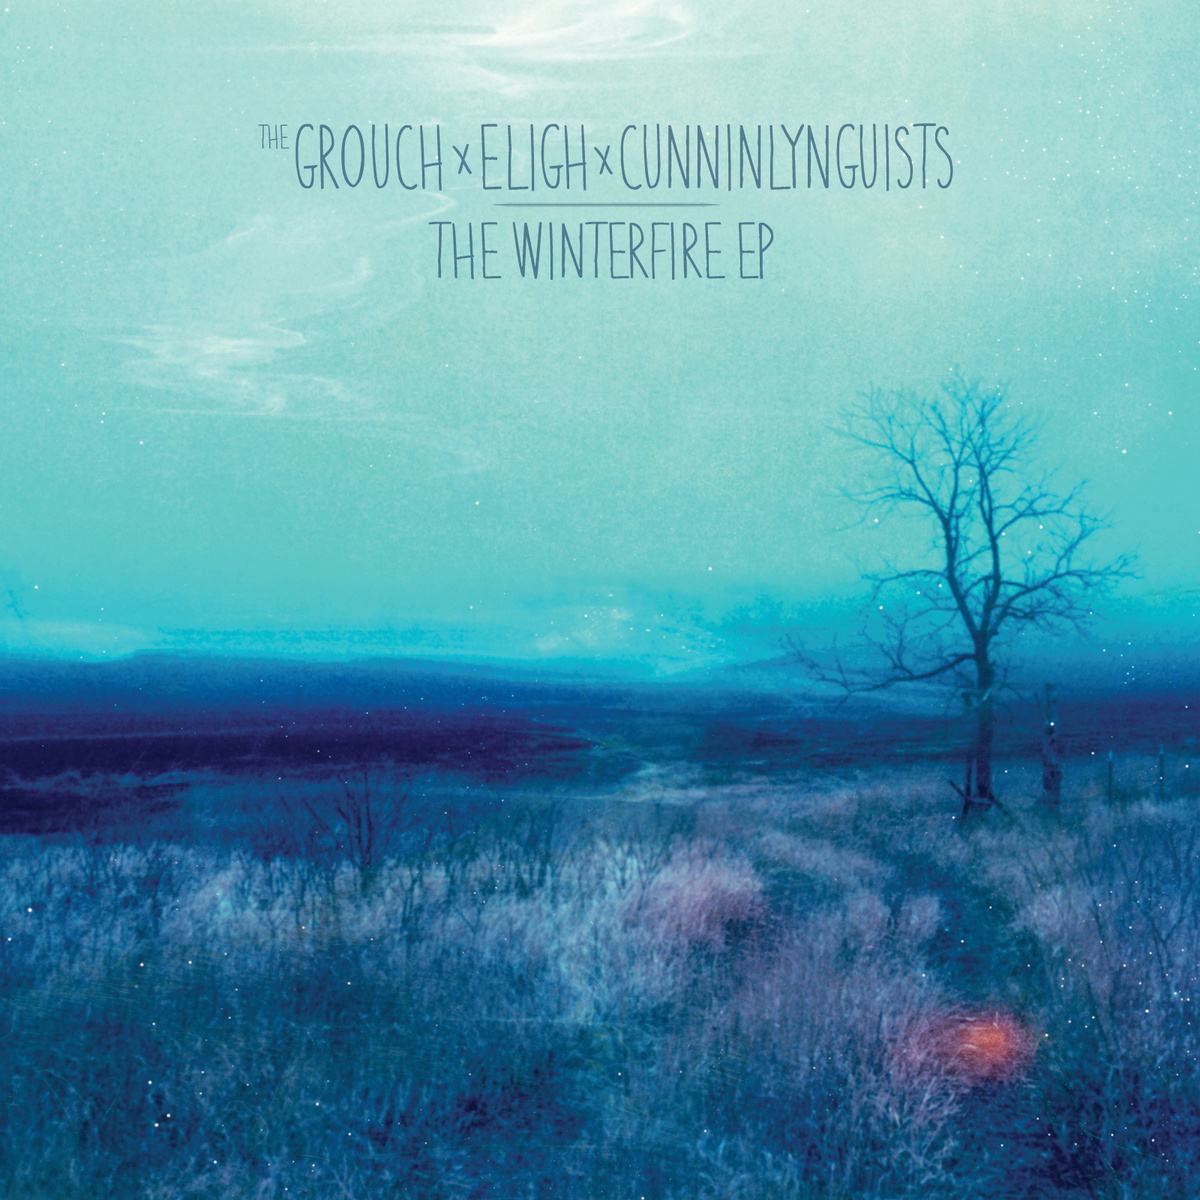 Cunninlynguists__the_grouch___eligh_-_the_winterfire_ep